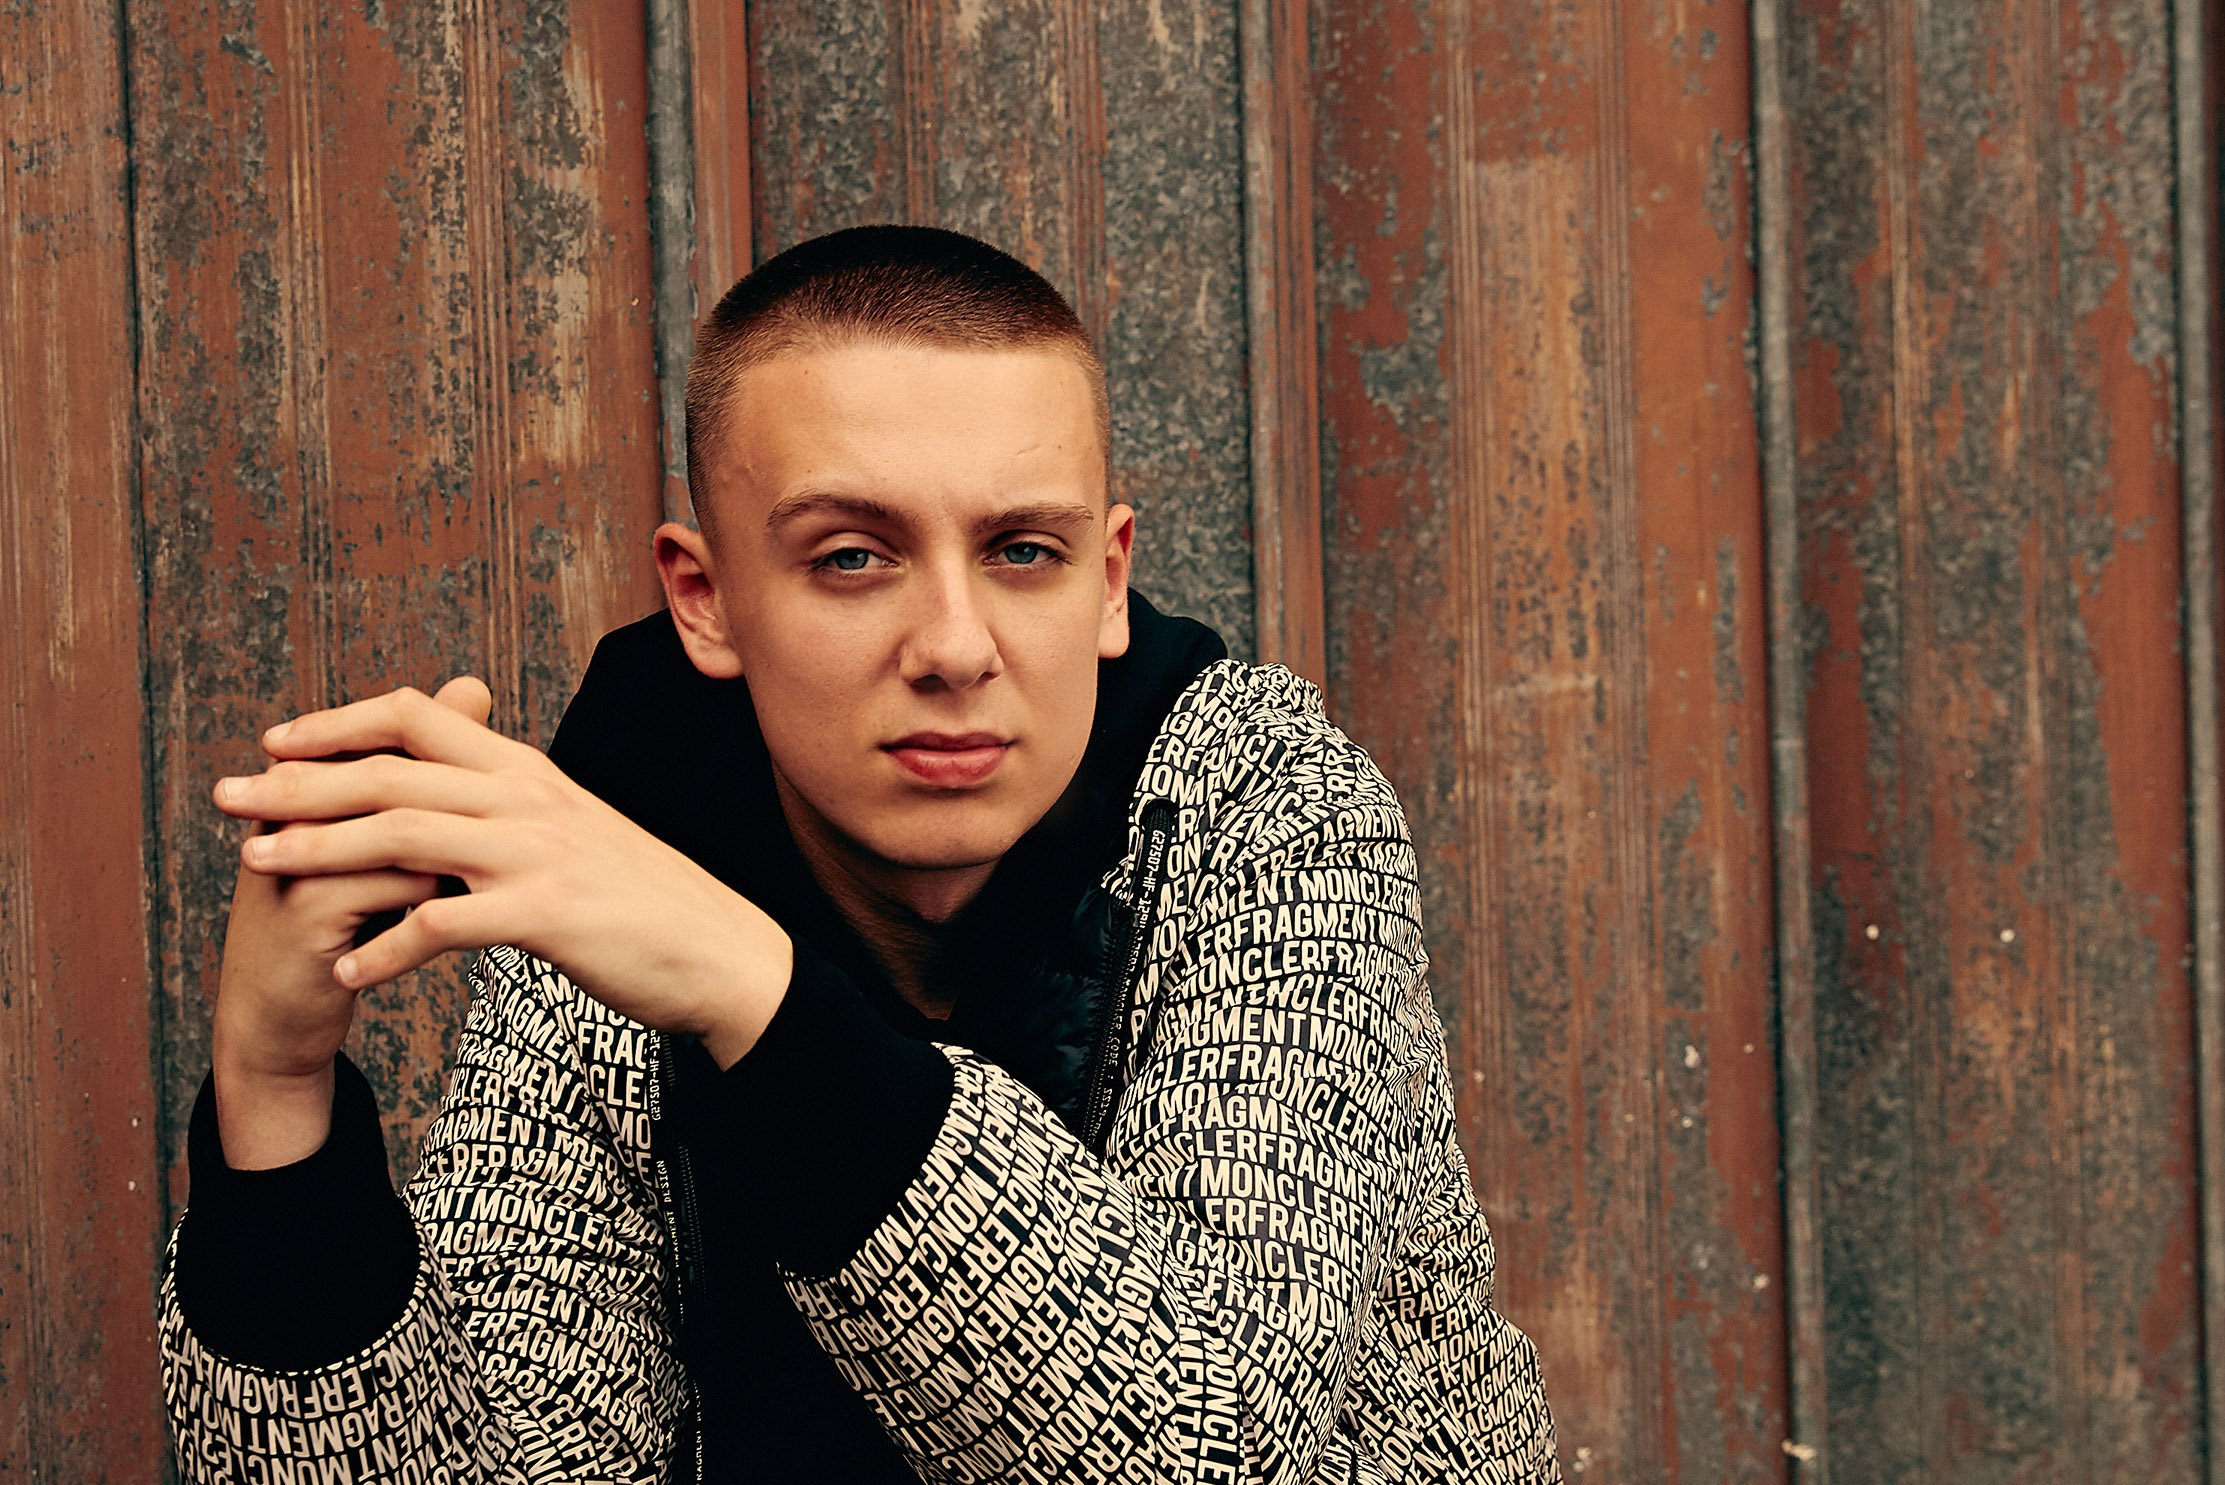 BN1's Charlotte Beldham talks to rising UK rap talent Aitch, ahead of his show at Brighton's Concorde 2 on Tue 10 Dec 2020